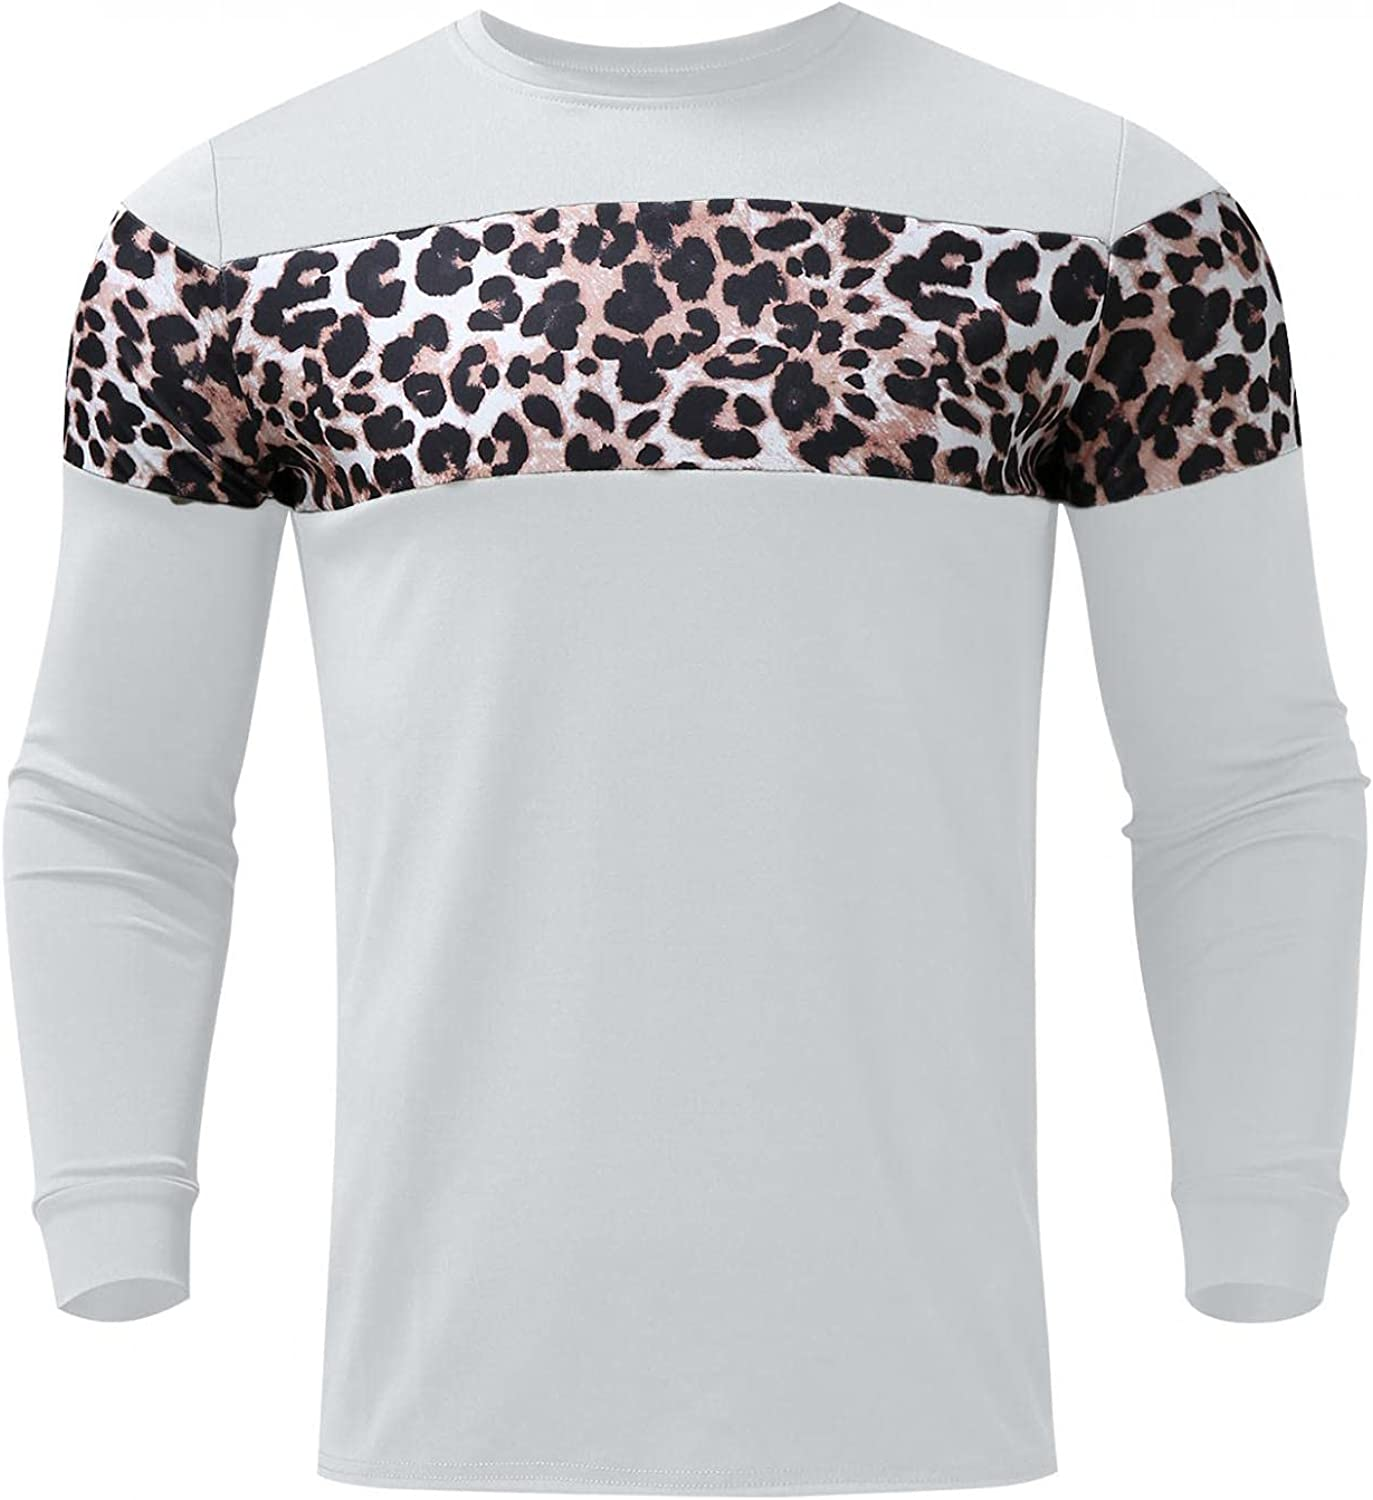 VEKDONE Mens Slim Fitted Long-Sleeve Tee Shirts Casual Cotton Leopard Printed Contrast Color Stitching T-Shirt Fashion Tops